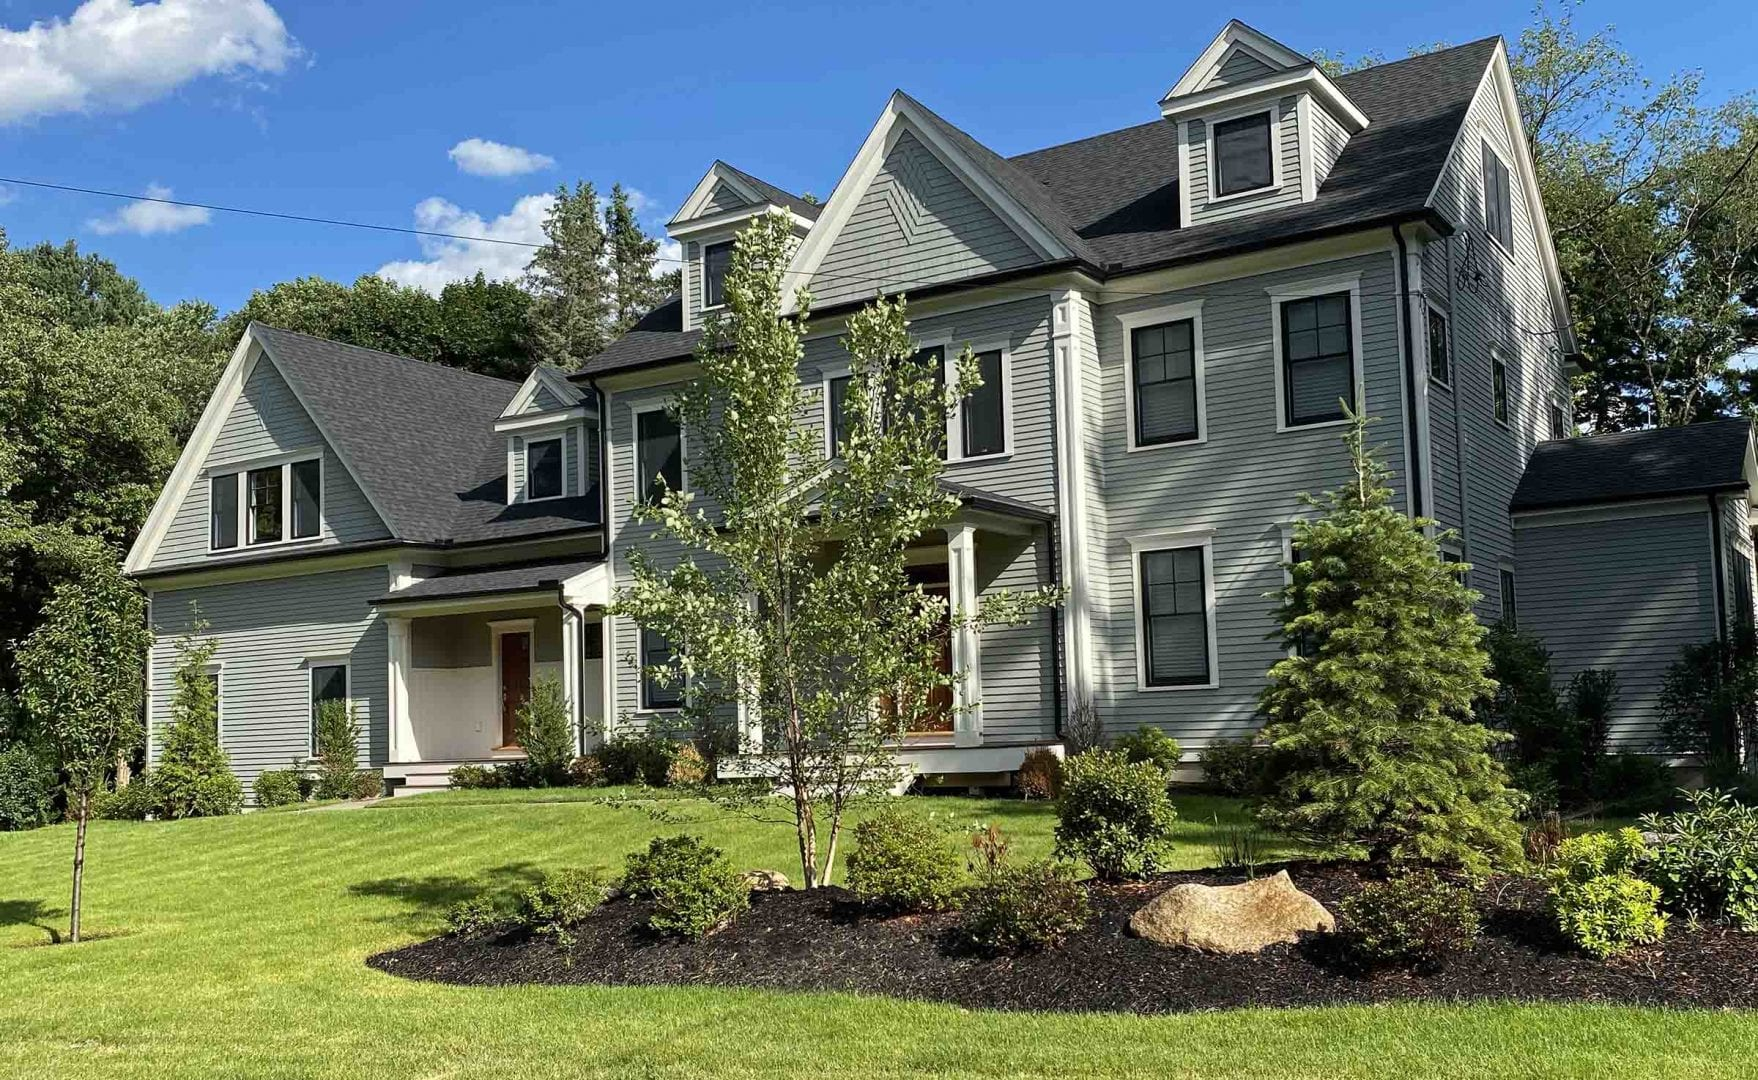 This picture displays the front yard of a recent landscape design project we worked on.